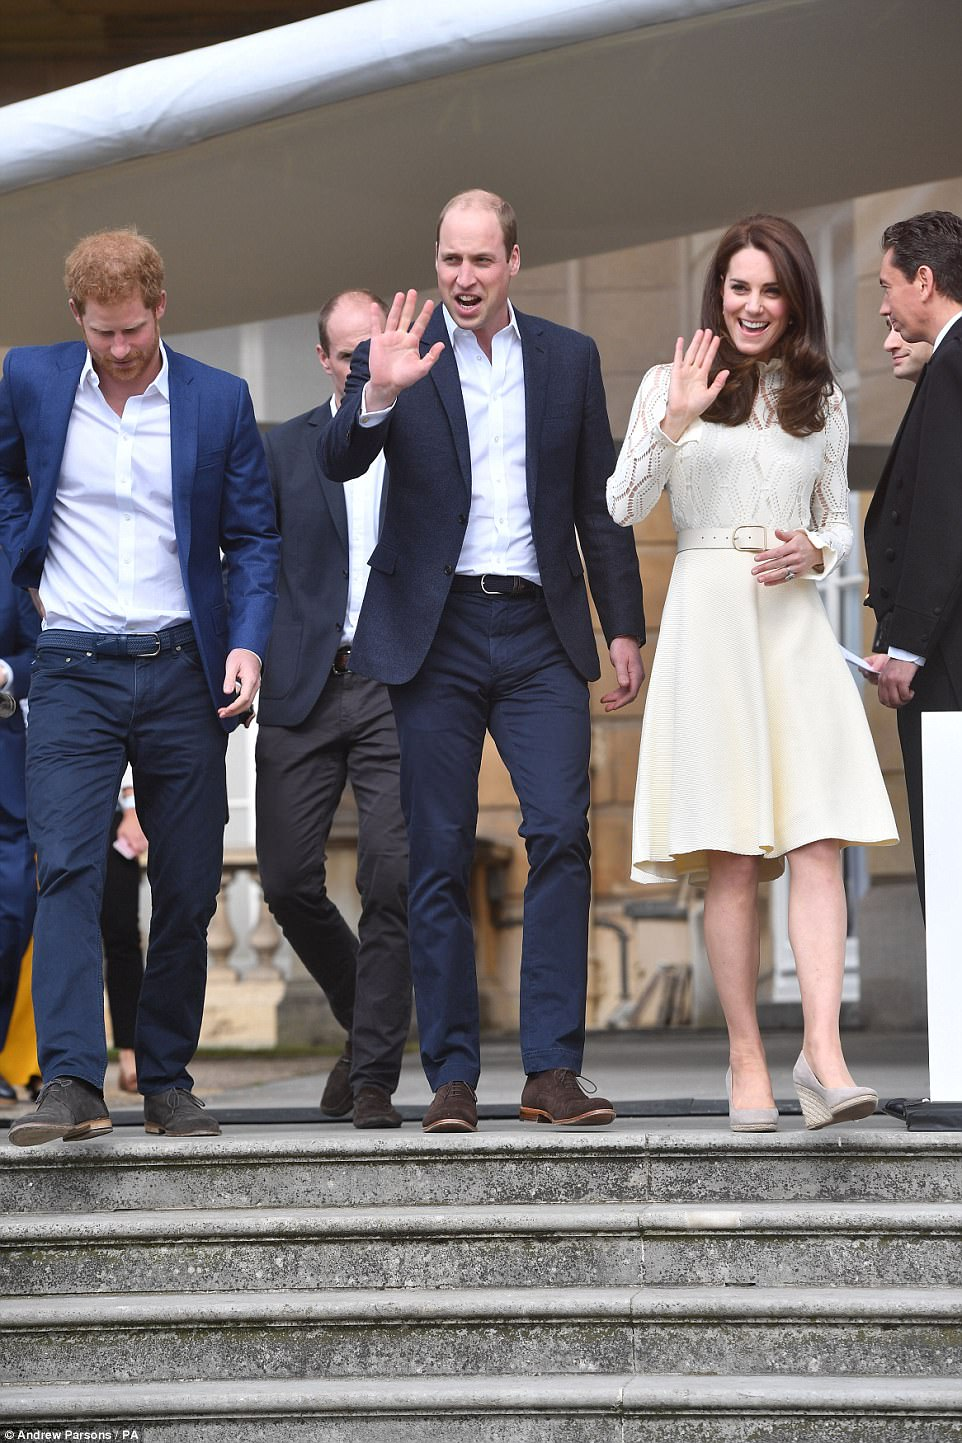 The Duke and Duchess of Cambridge and Prince Harryhosting a Buckingham Palace tea party for the children of Armed Forces men and women who died in service to their country